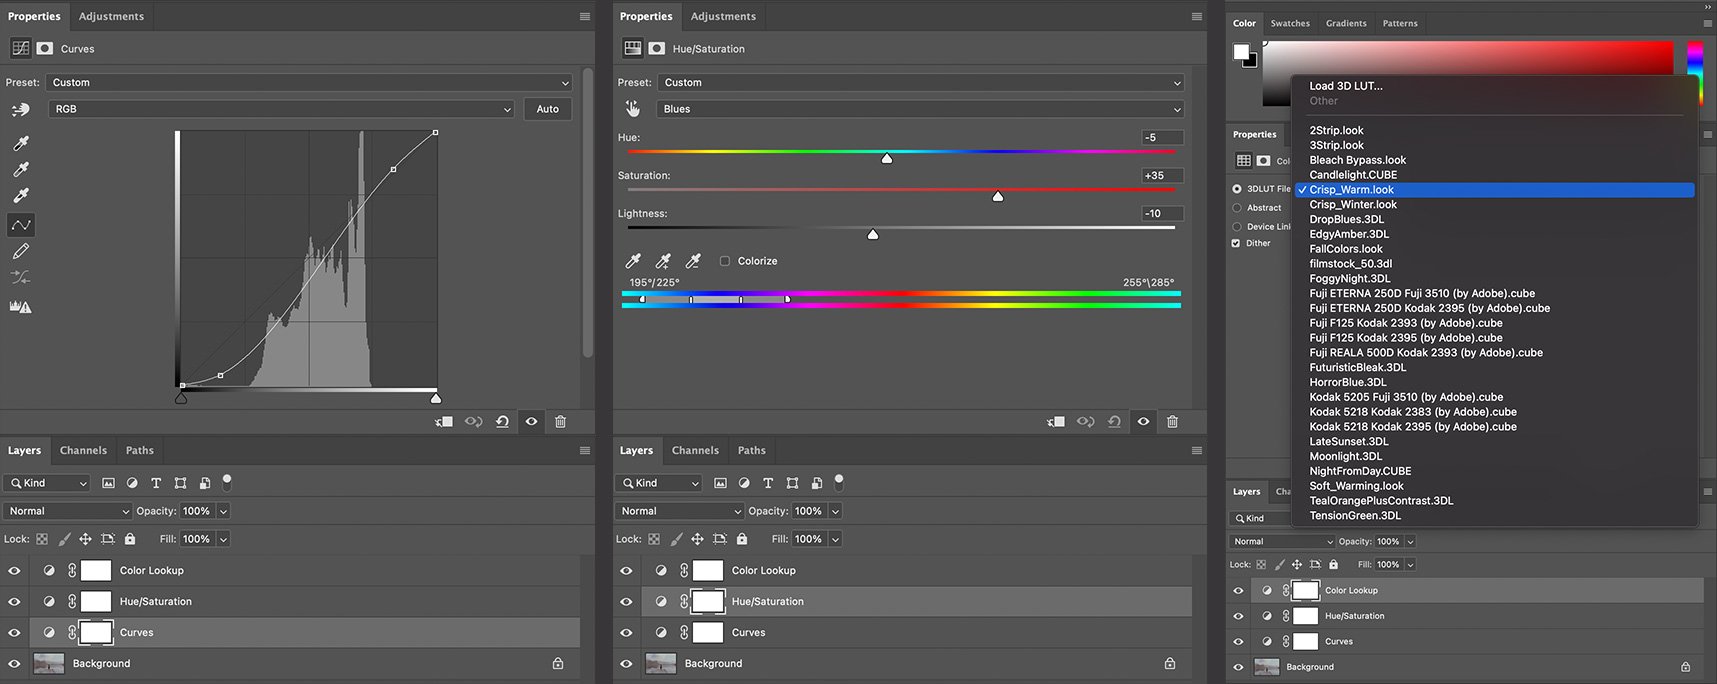 Photoshop Adjustment Layers for creating a 3D Color Lookup Effect